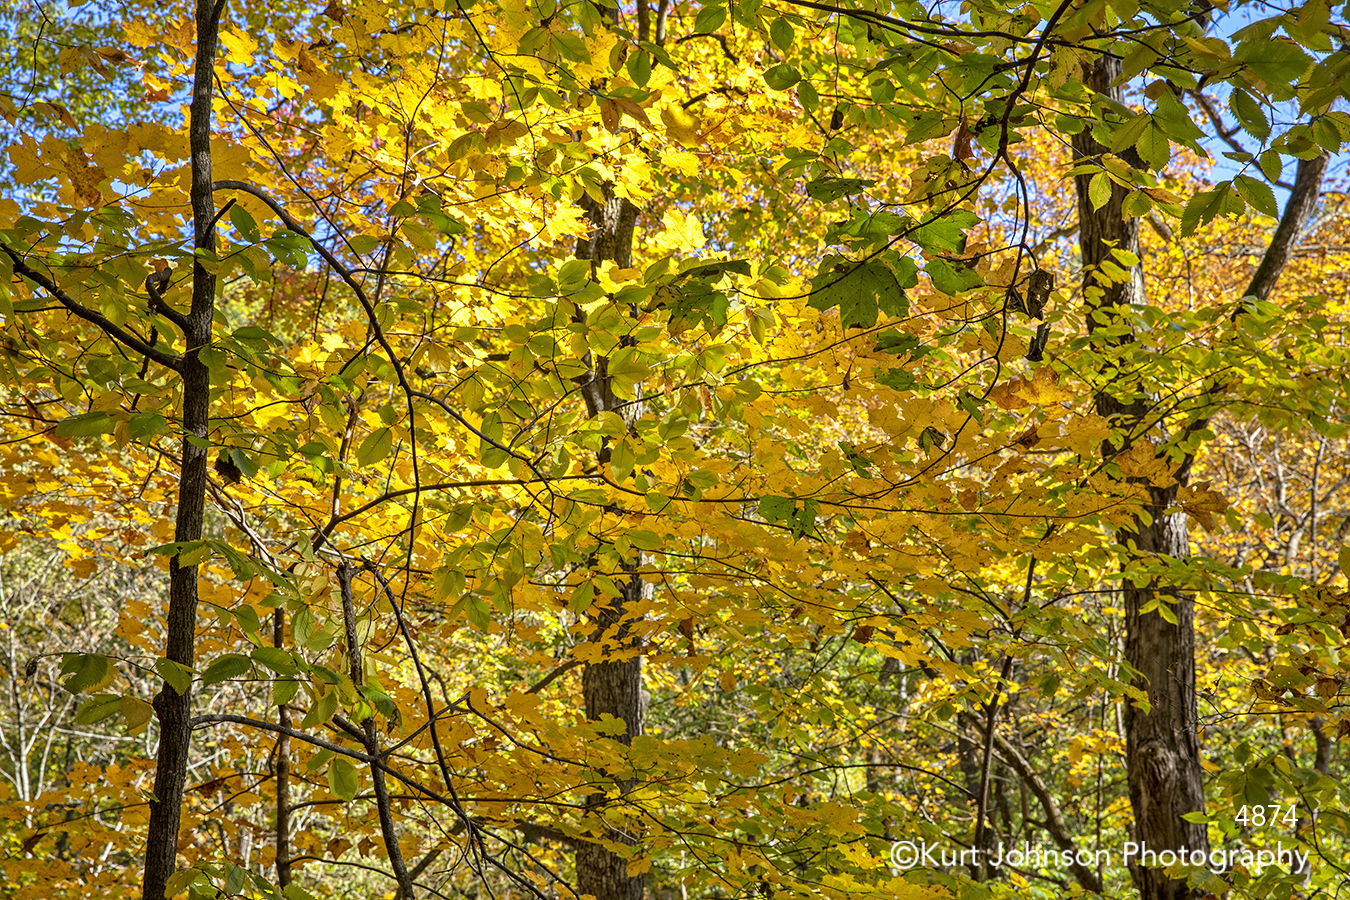 yellow orange fall autumn tree trees leaves branches landscape forest